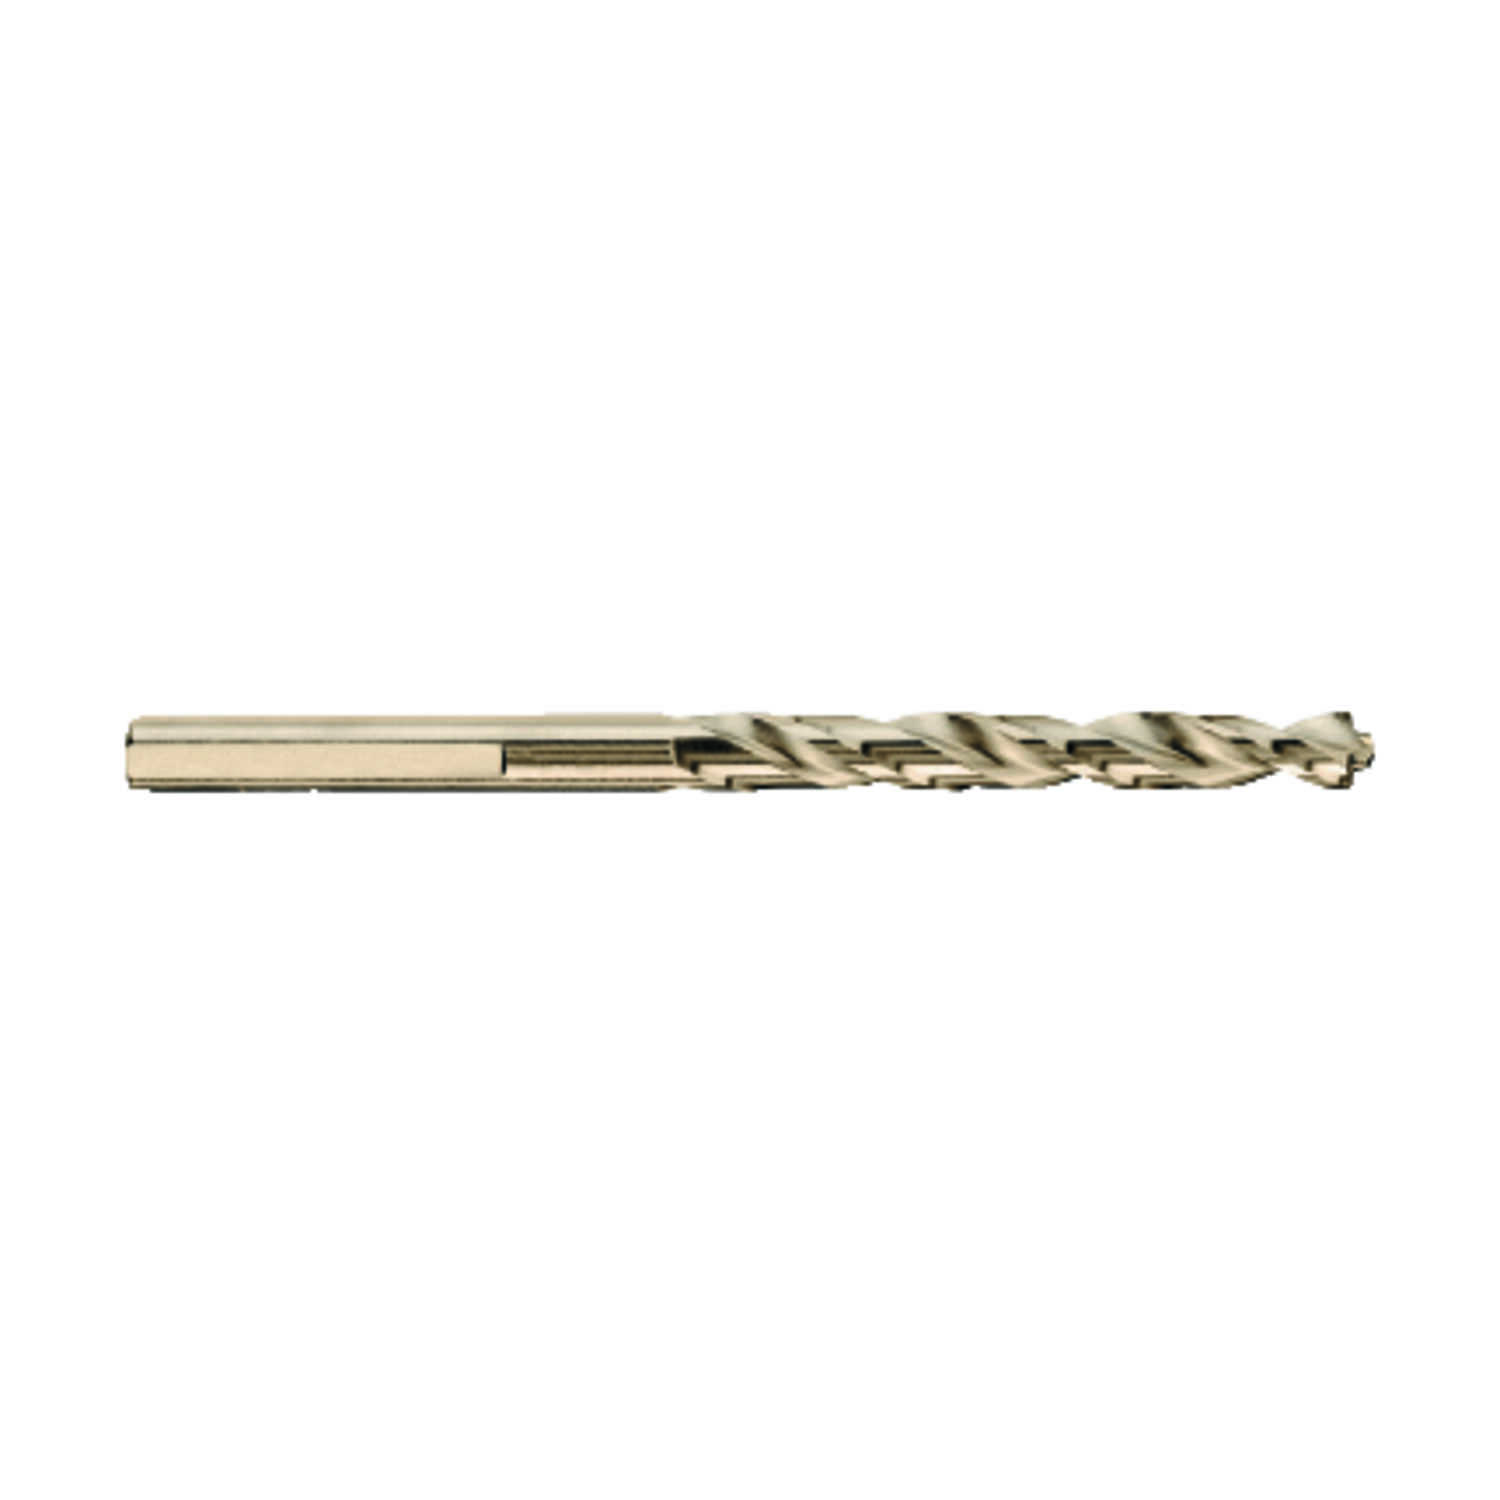 DeWalt  Pilot Point  7/32 in. Dia. x 3-3/4 in. L High Speed Steel  3-Flat Shank  1 pc. Split Point D